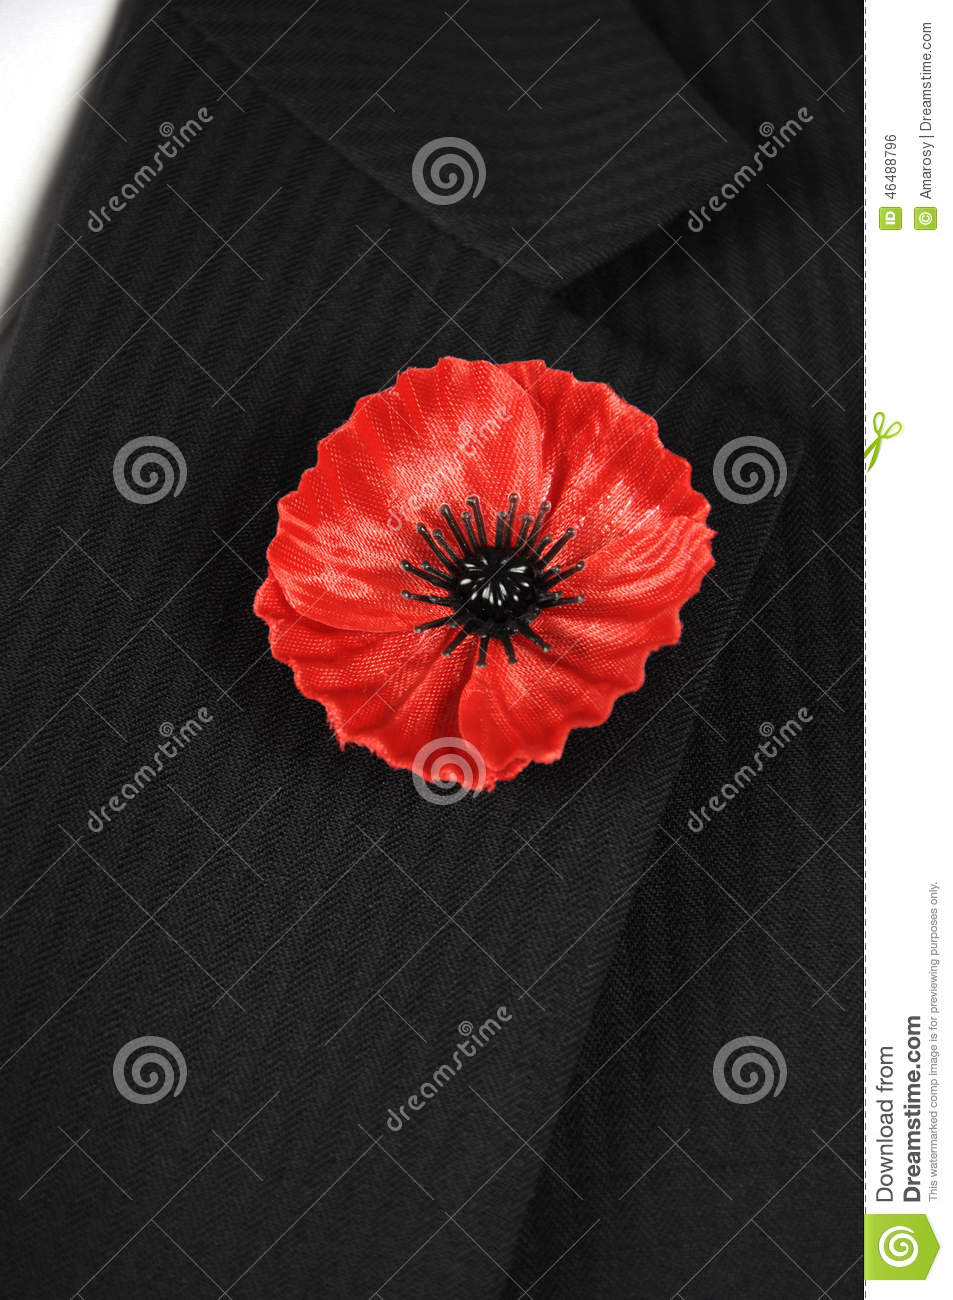 Lest We Forget Red Poppy Lapel Pin Badge On Black Suit Vertical